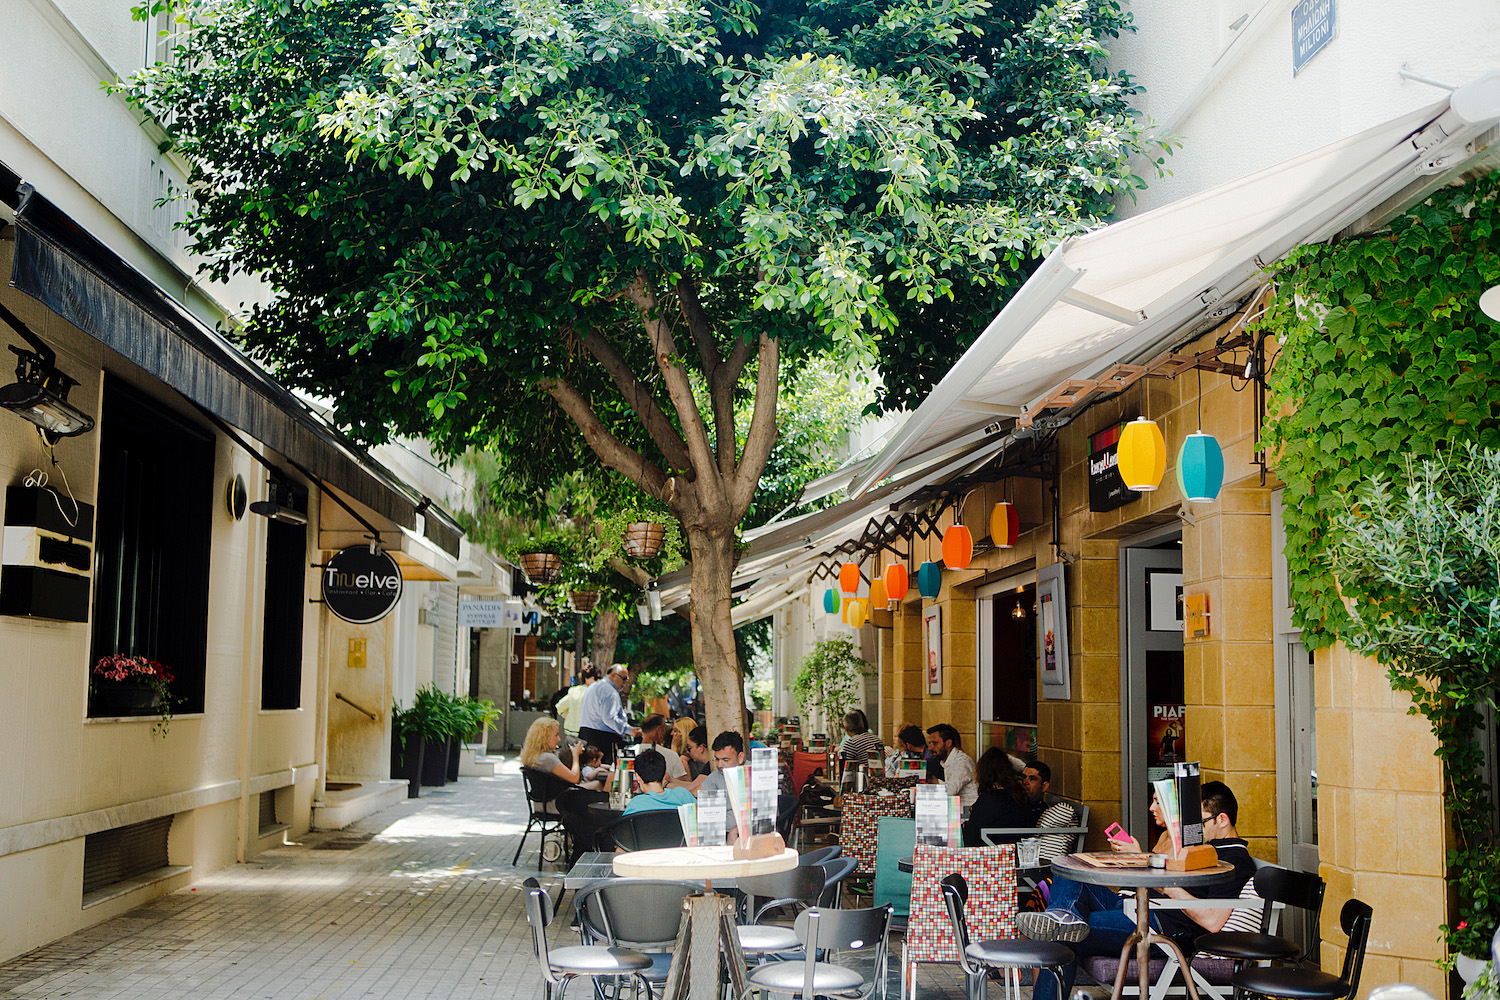 Athens Food Guide, where to eat in Athens, Restaurant-Tipps für Athen | www.thegoldenbun.com